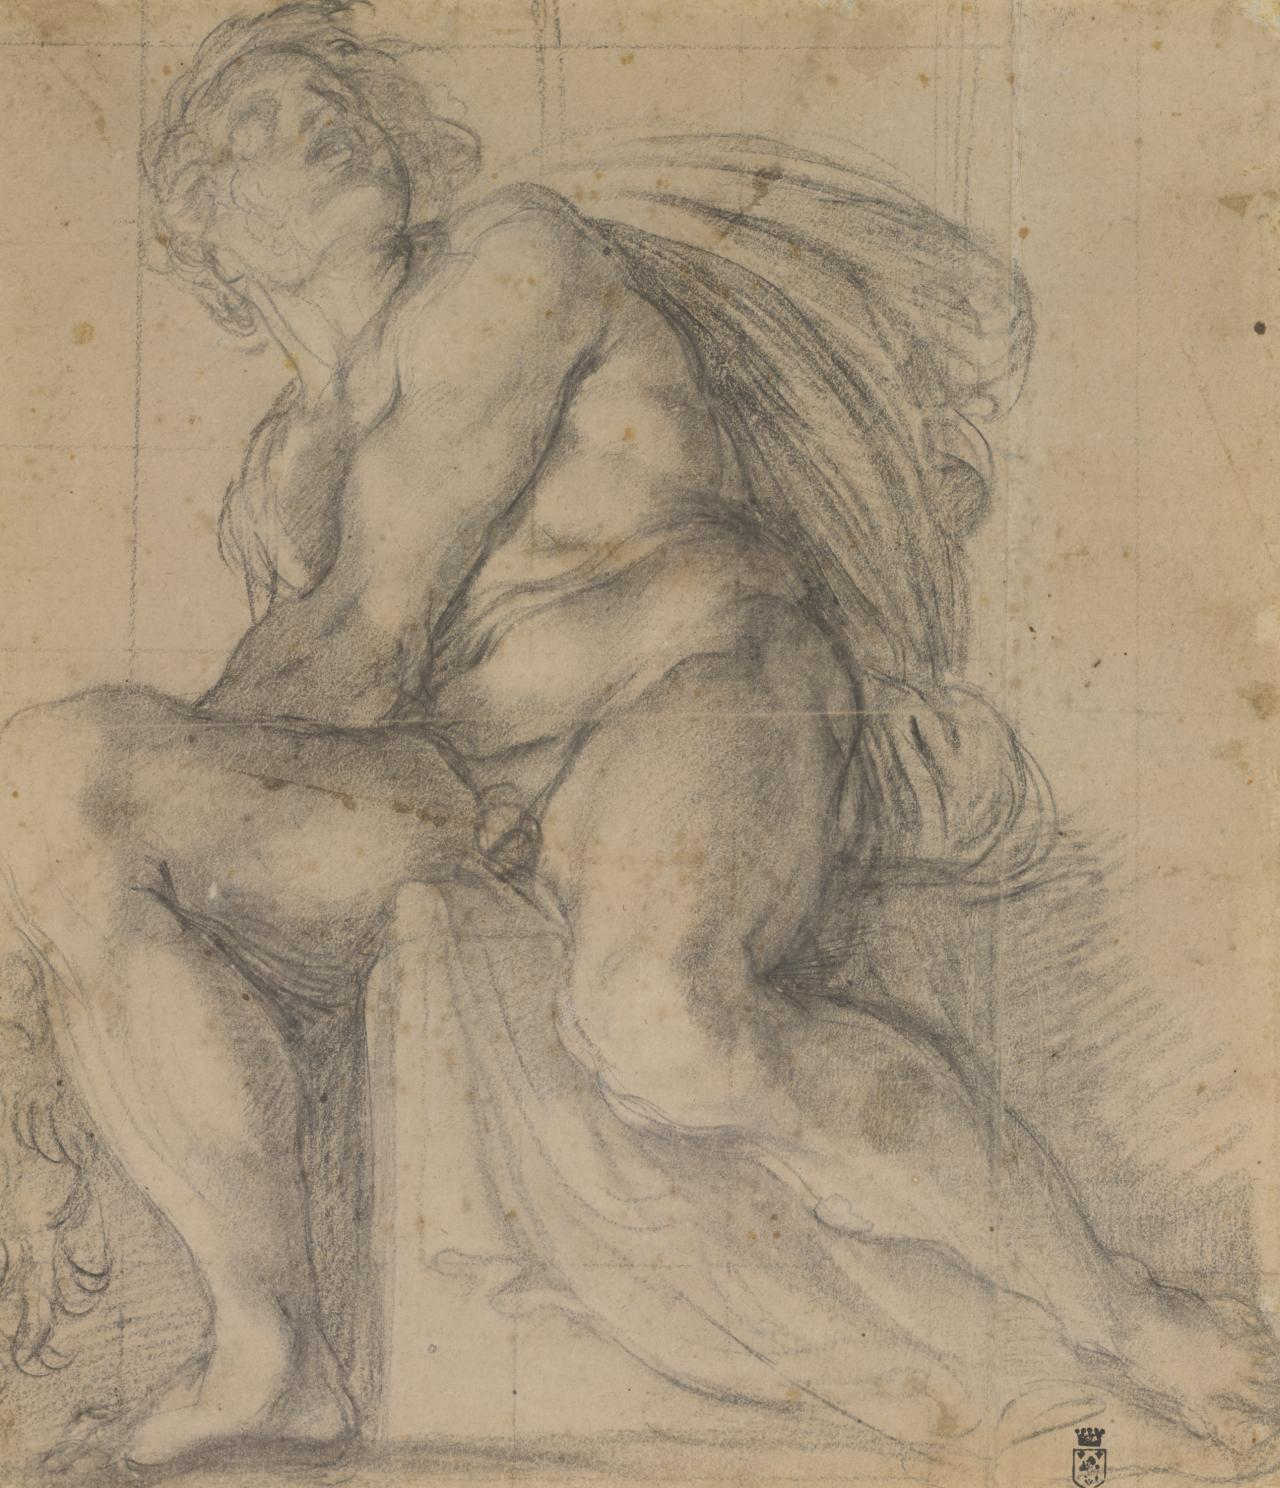 Study for an ignudo